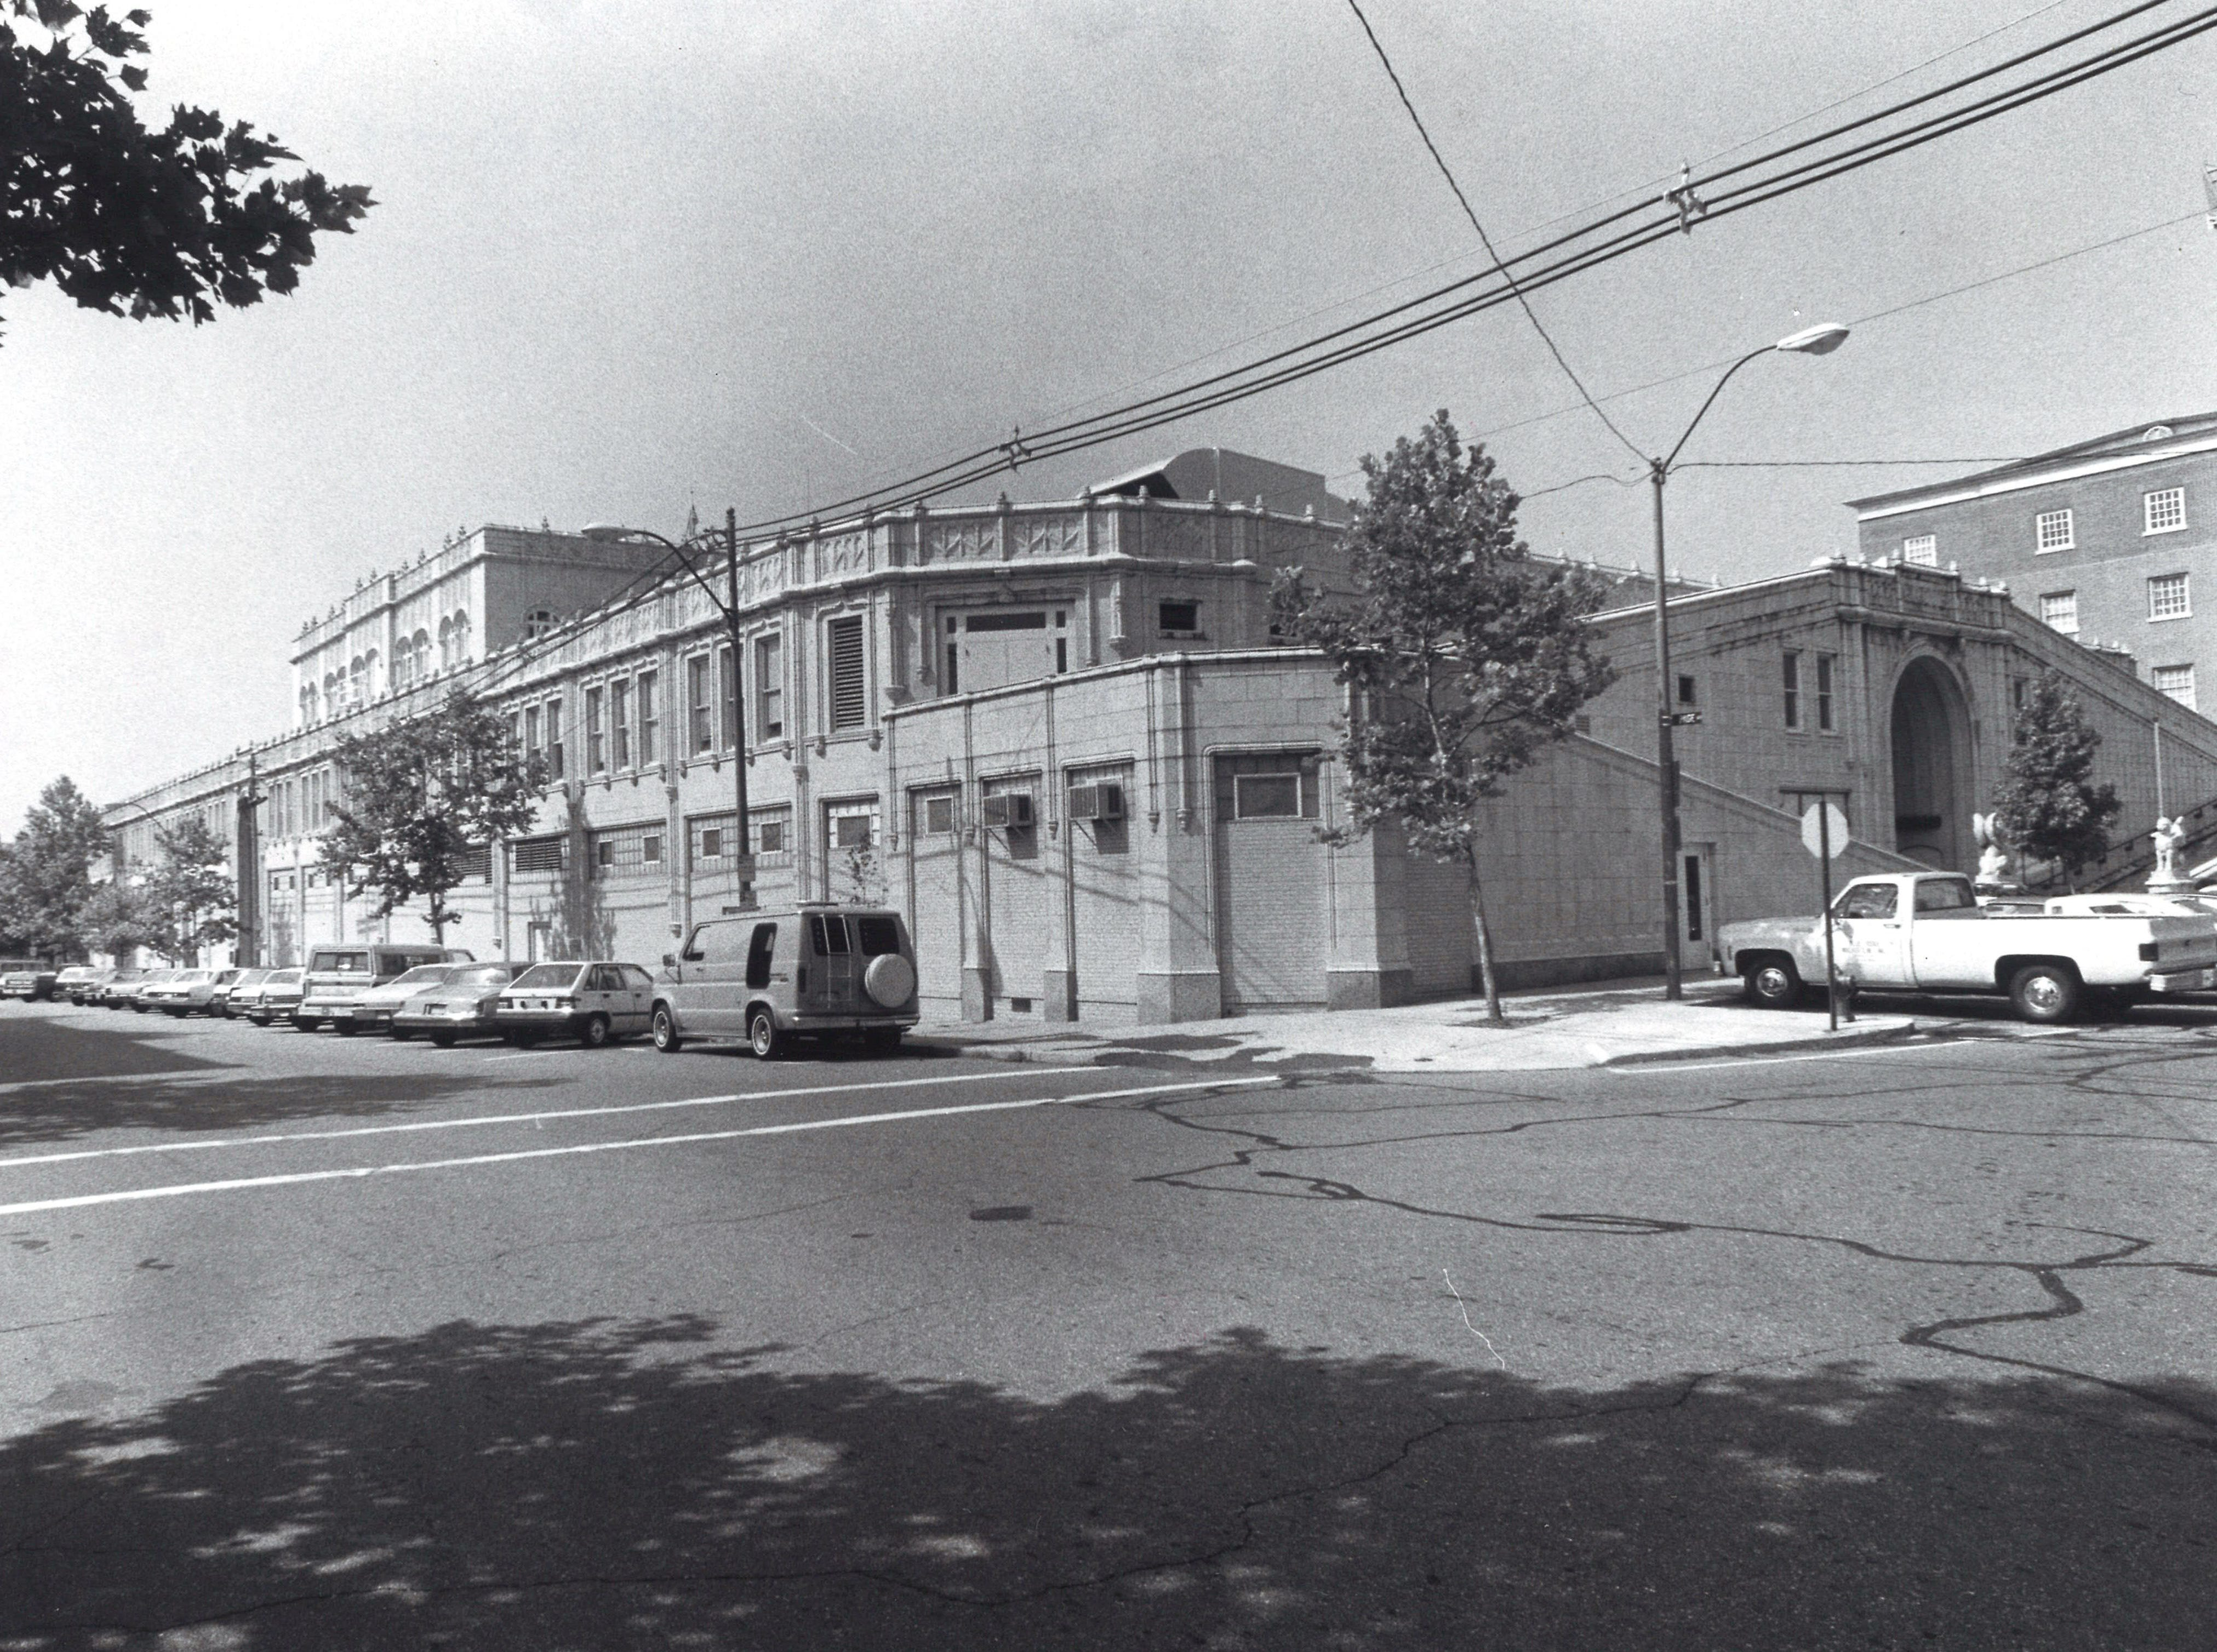 Grove Arcade building in 1985, when it was the Federal Building.